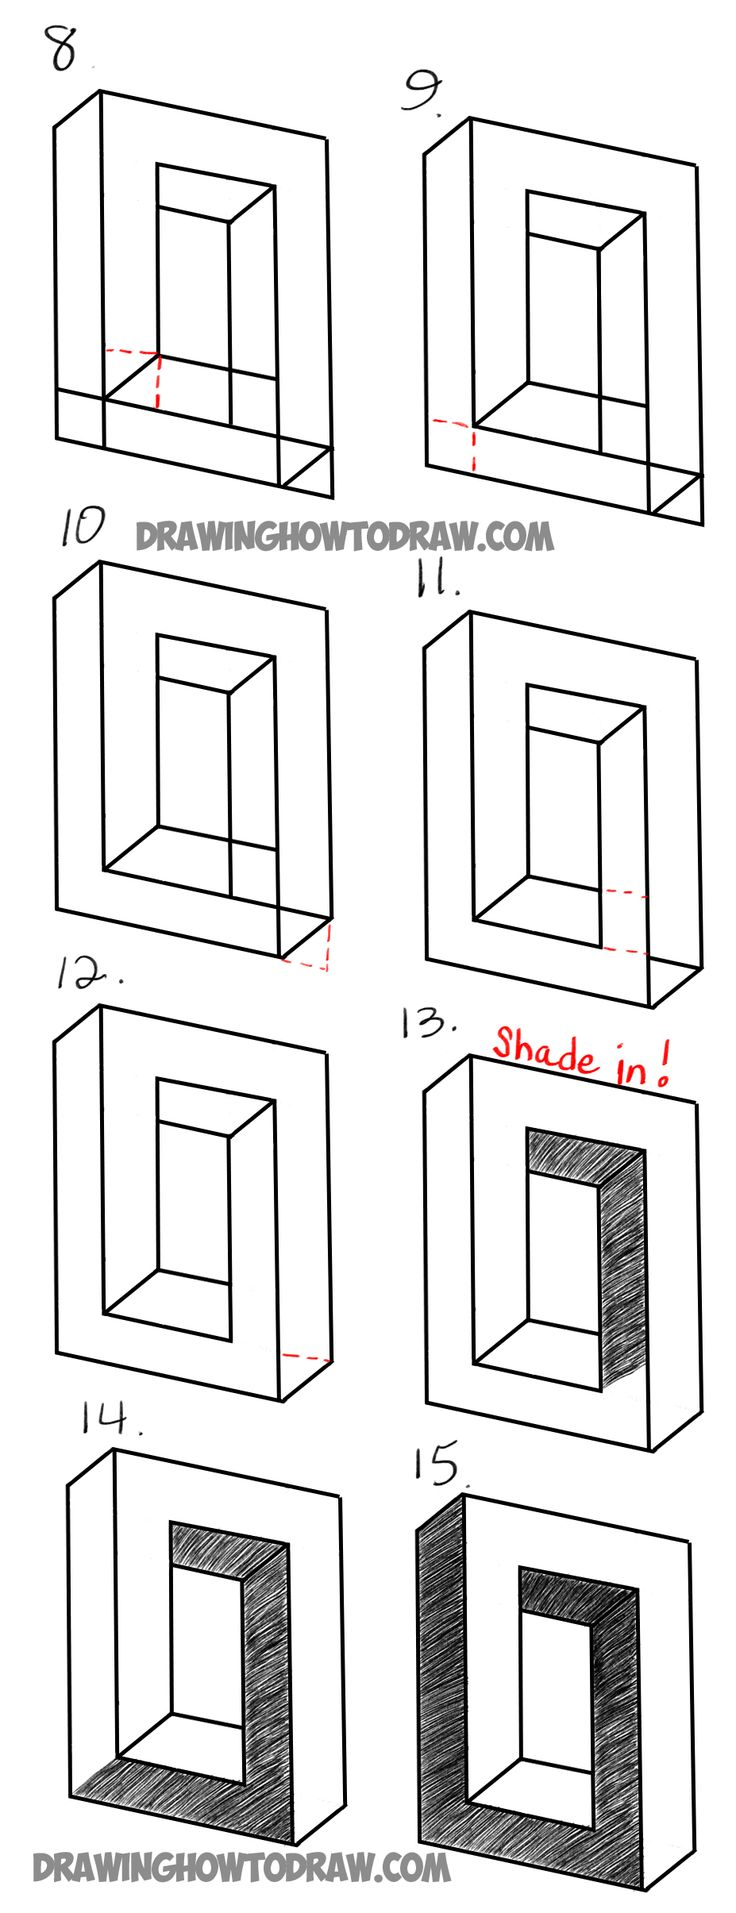 easy steps to drawing an impossible square rectangle